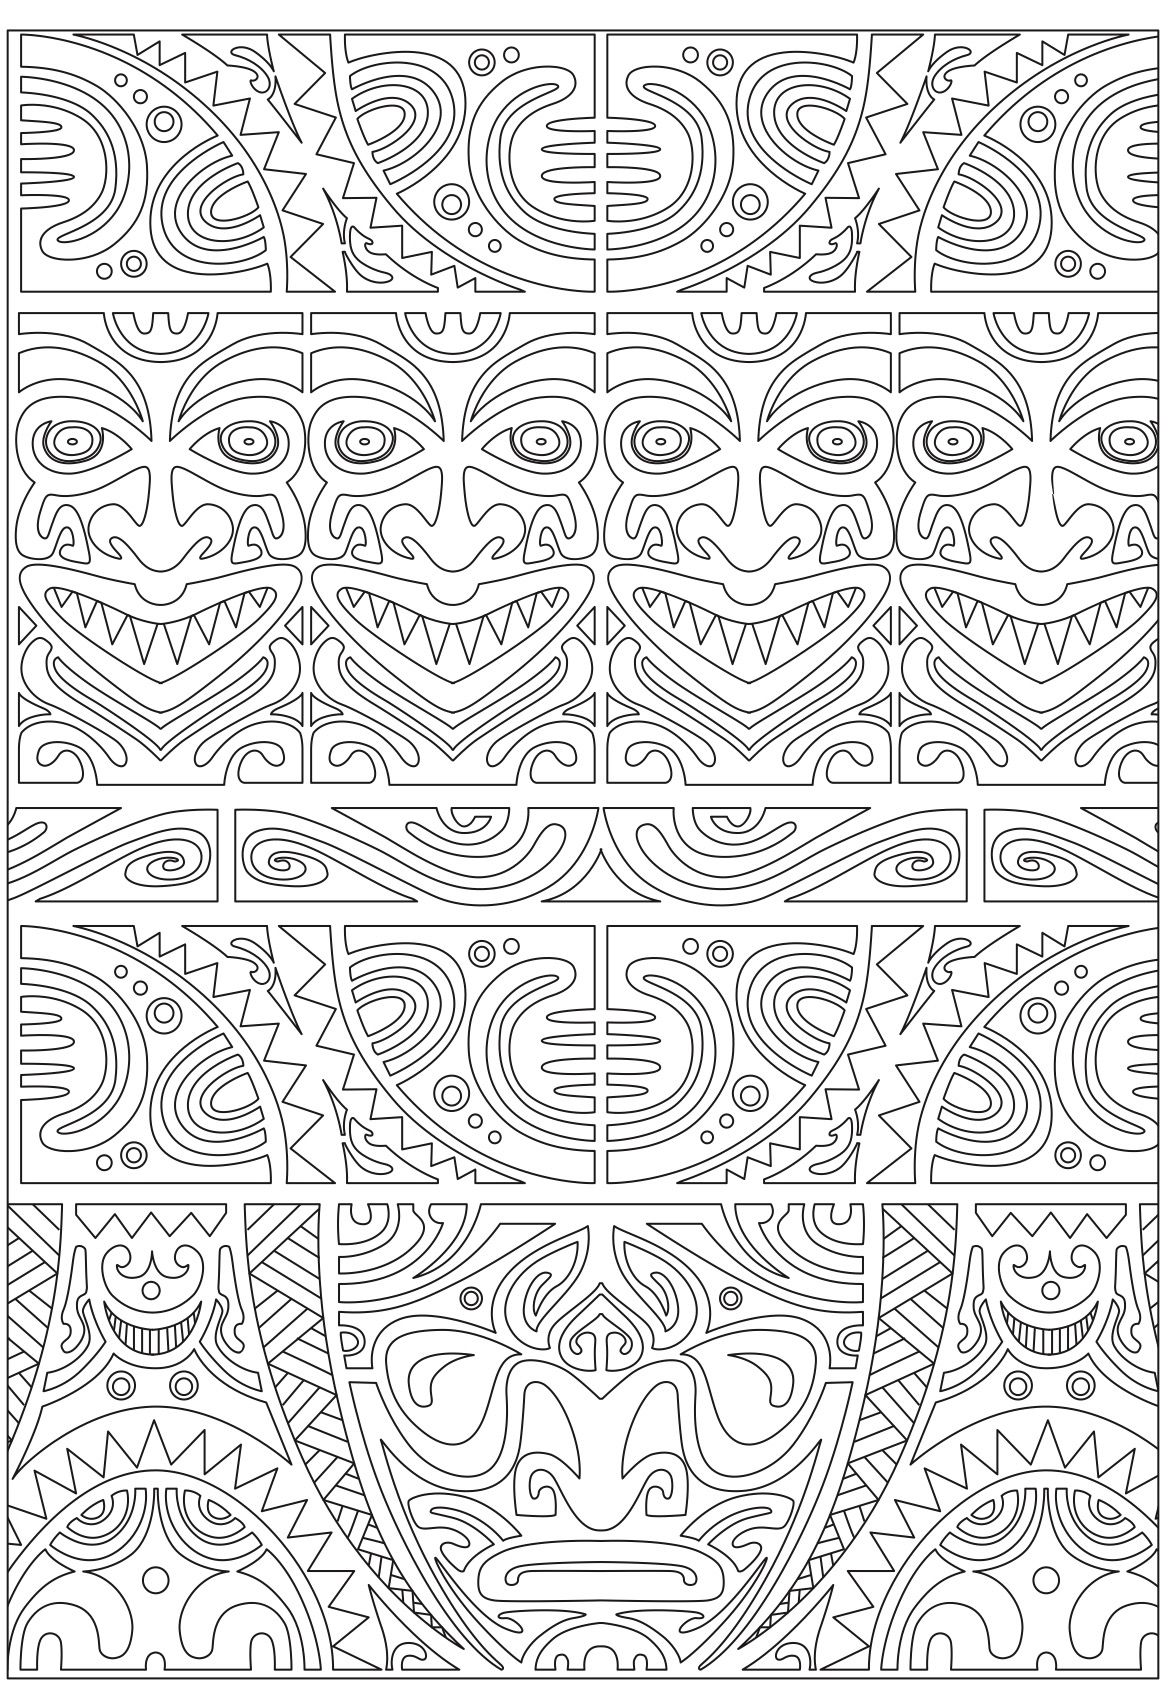 Inca Inspired Coloring Page Patterns Coloring Pages Pinterest